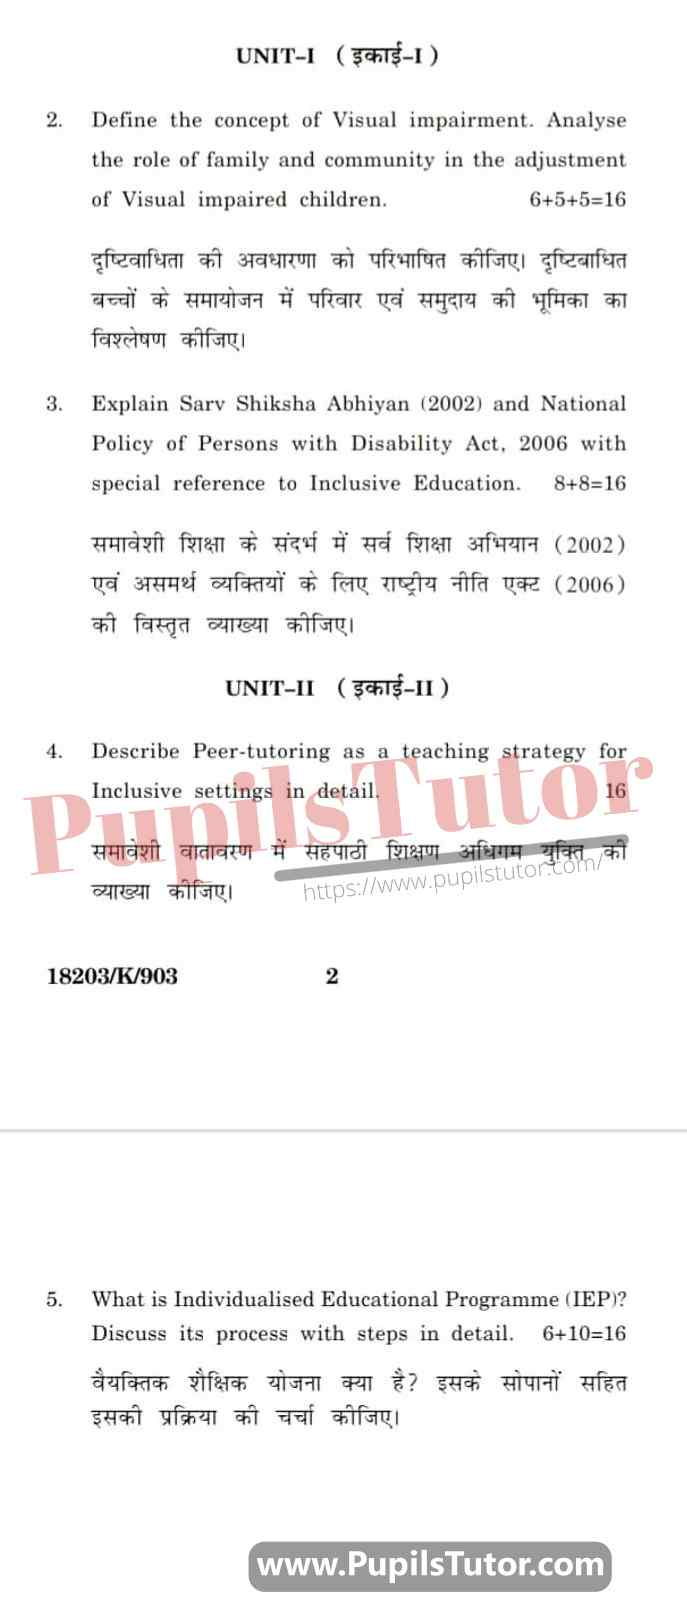 KUK (Kurukshetra University, Haryana) Creating An Inclusive School Question Paper 2020 For B.Ed 1st And 2nd Year And All The 4 Semesters In English And Hindi Medium Free Download PDF - Page 2 - www.pupilstutor.com